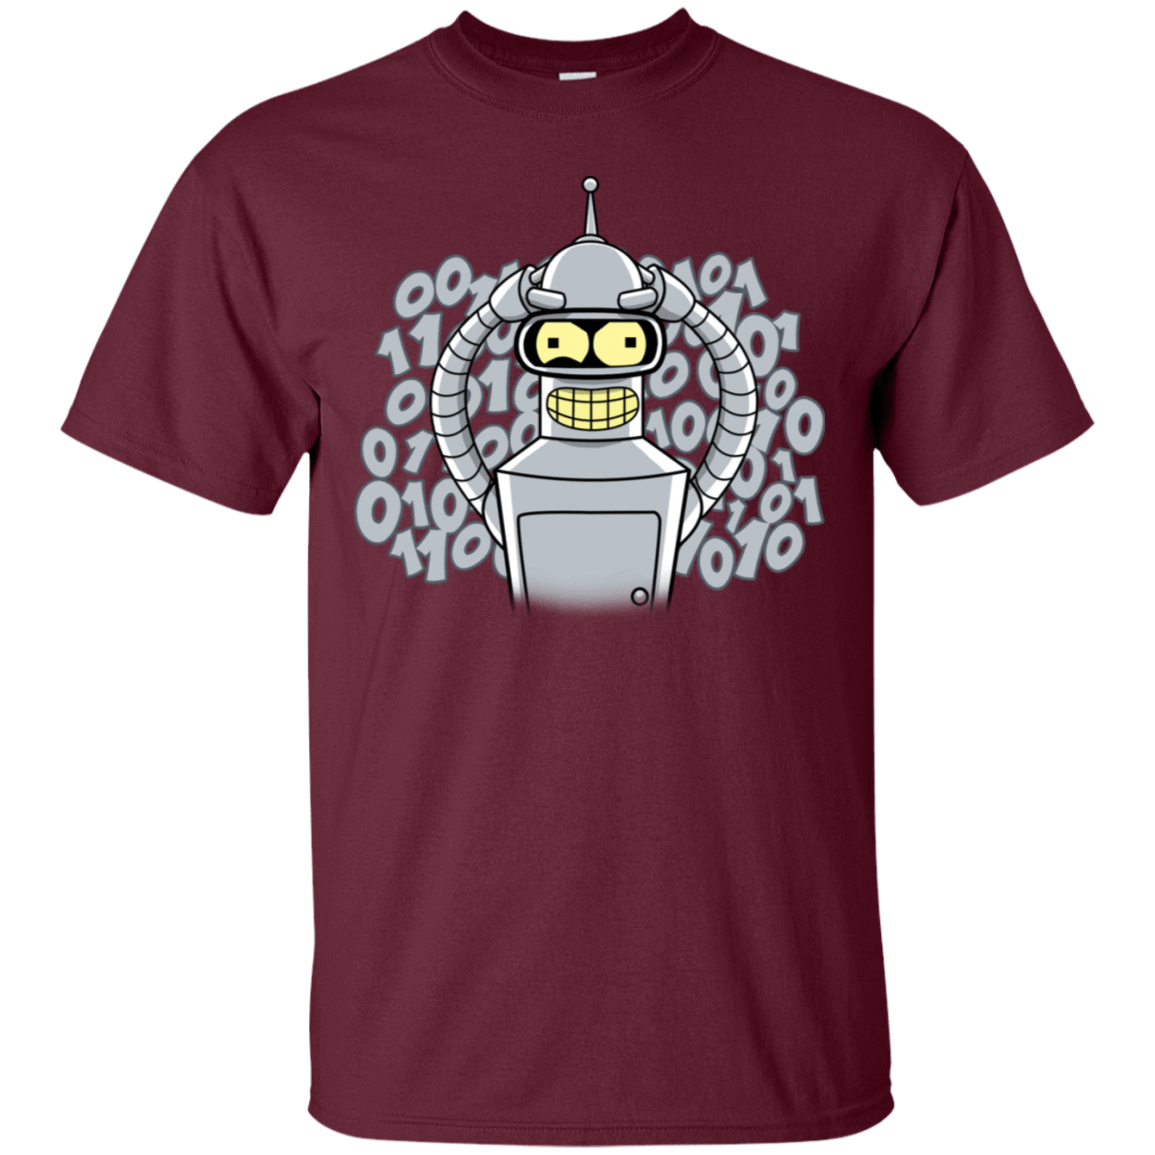 The Bender Joke T-Shirt